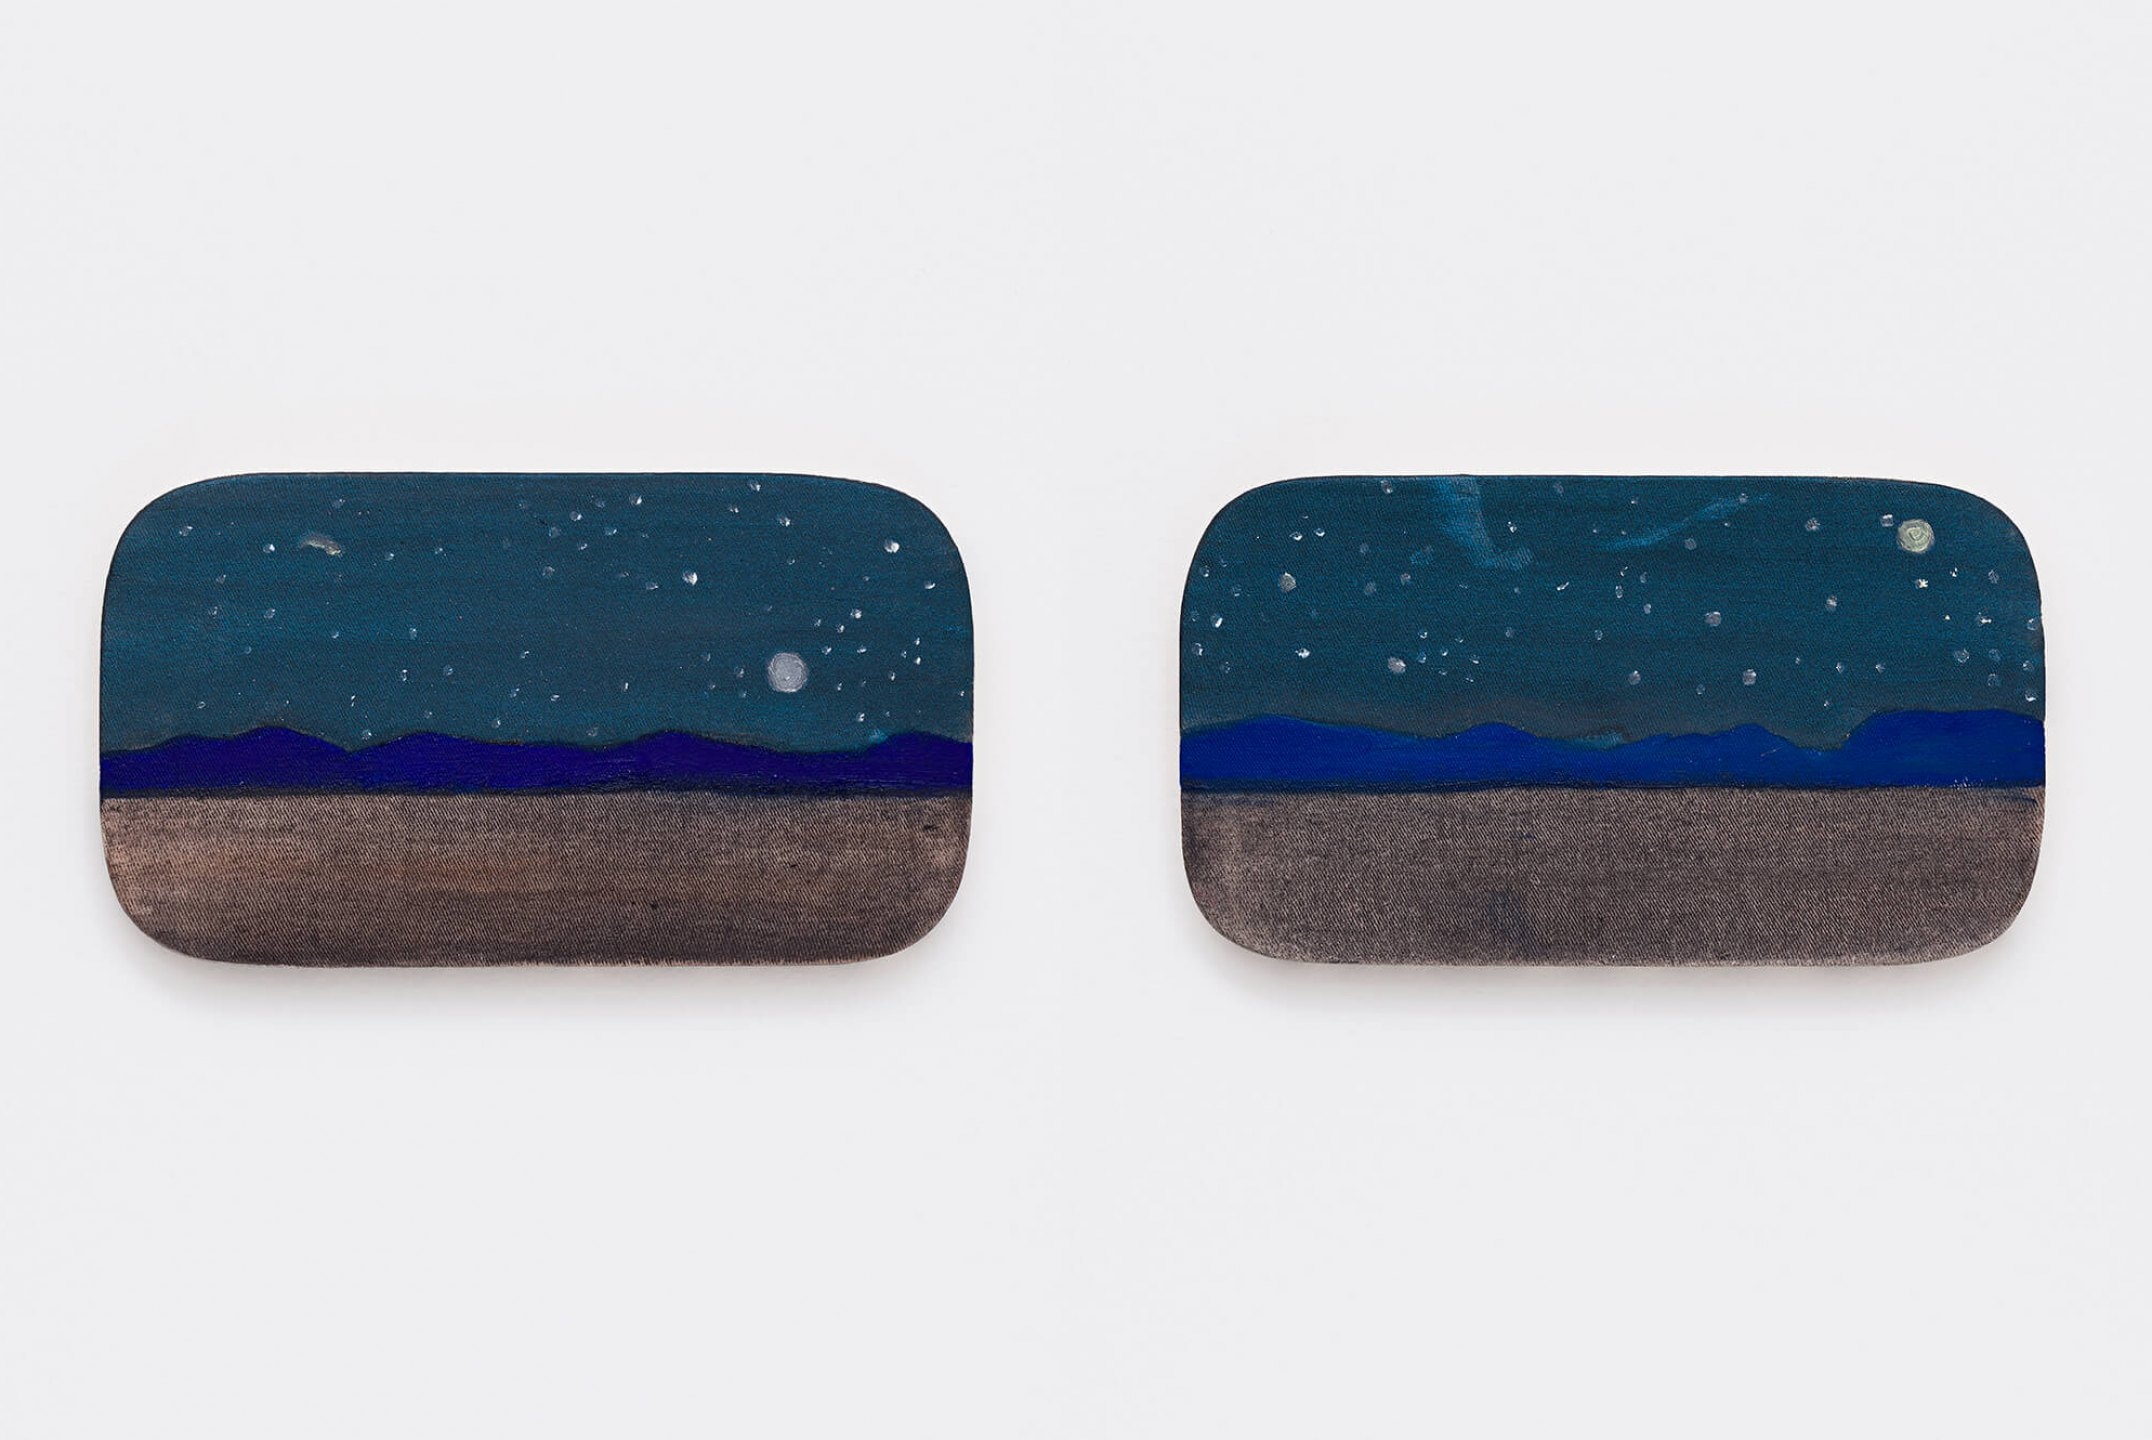 Marina Perez Simão,&nbsp;<em>Untitled,</em>&nbsp;2015, oil and iridescent pigment on canvas, 17 × 30 × 2 cm&nbsp; - Mendes Wood DM